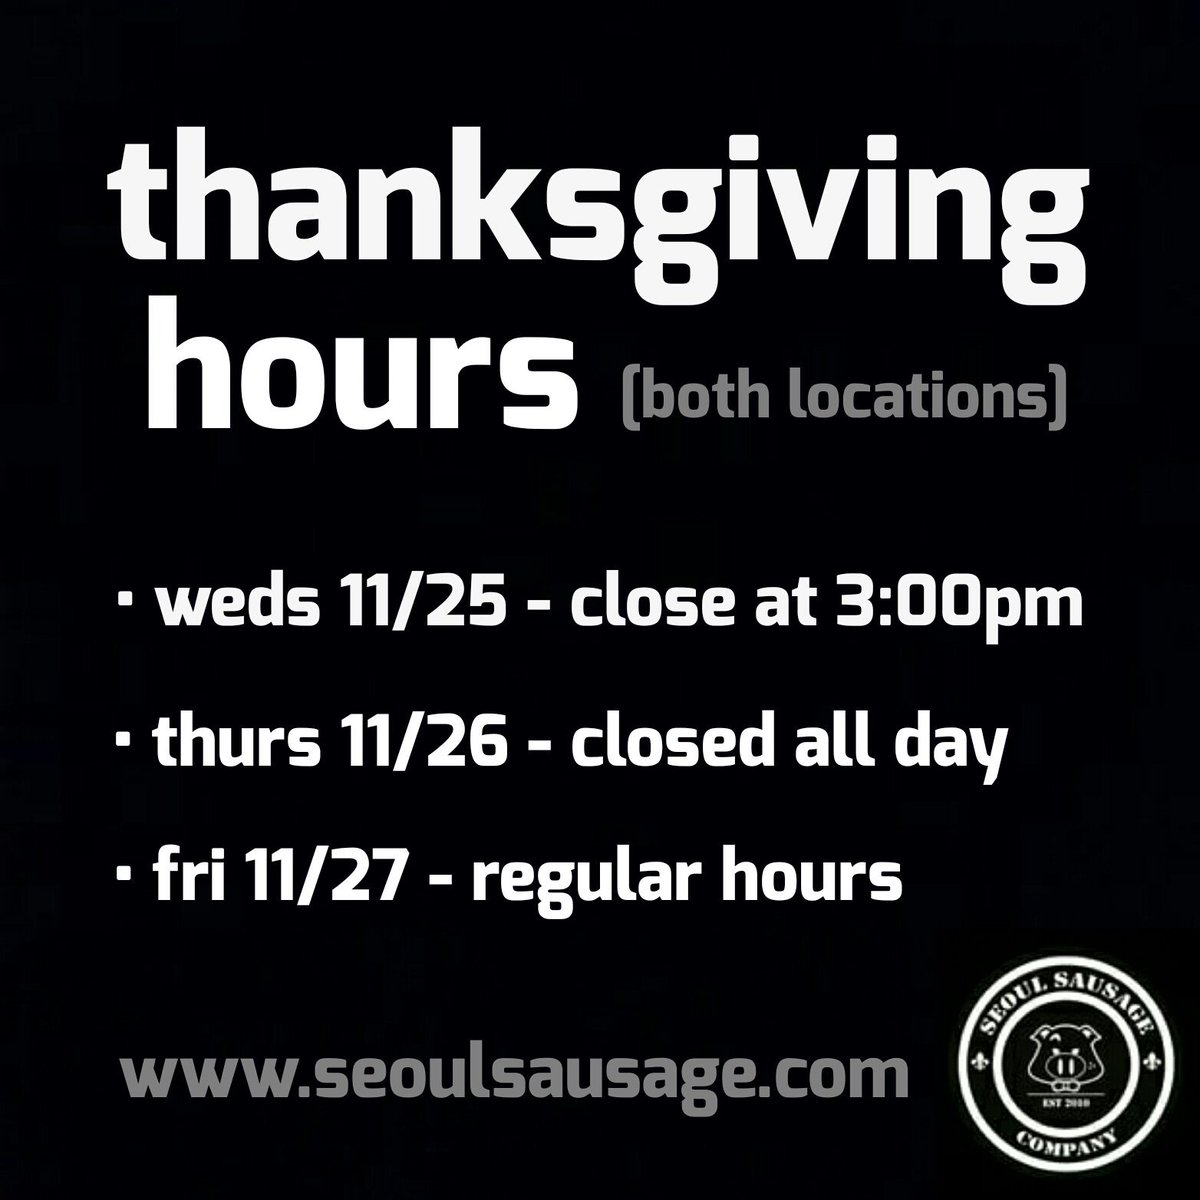 #Thanksgiving hours: https://t.co/XaZgiSKzIC